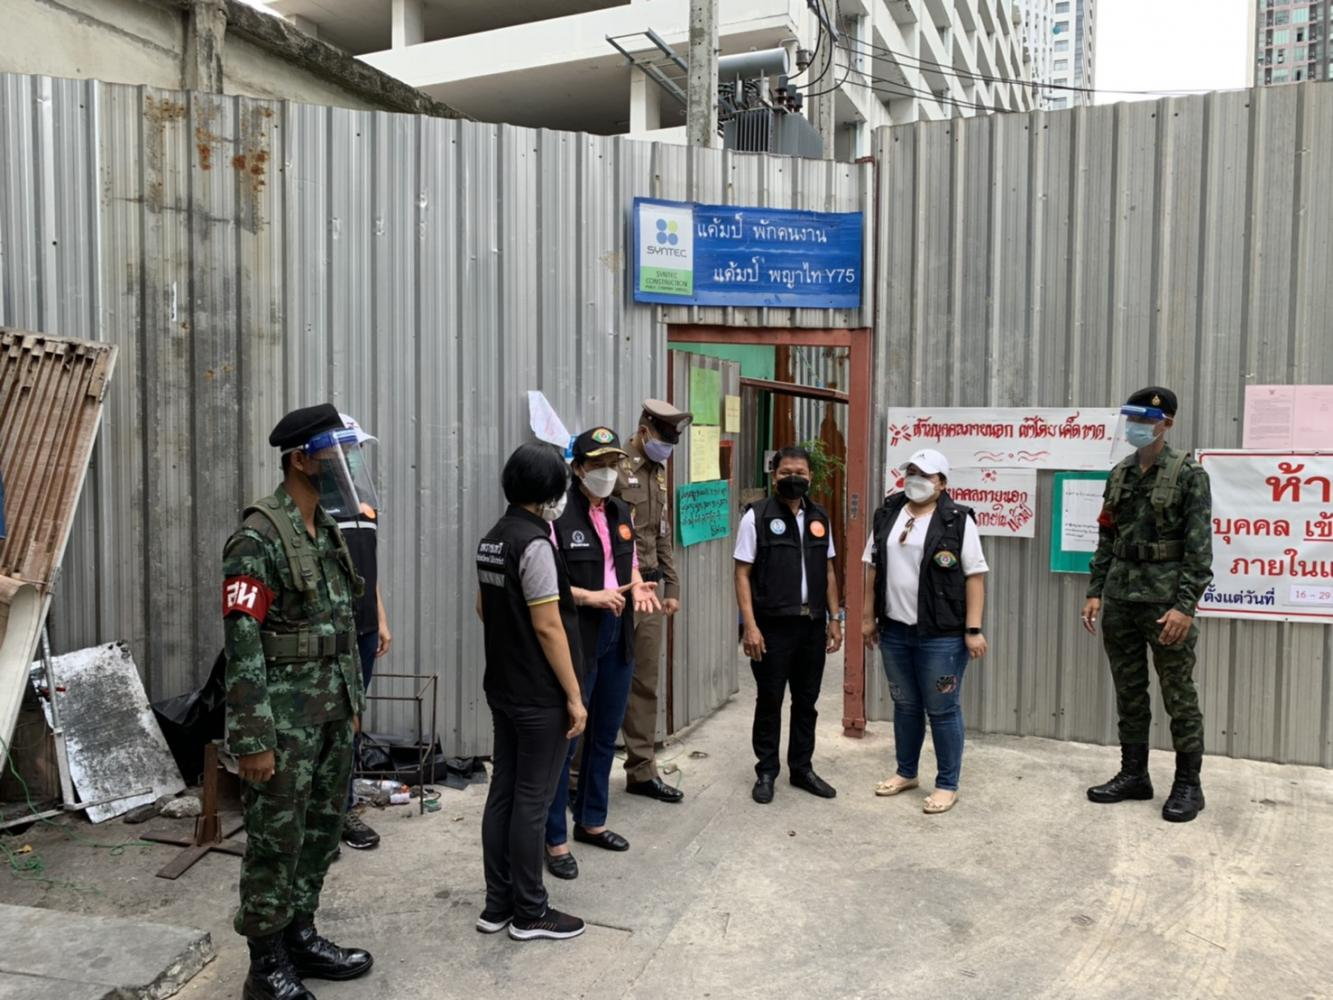 Military police stand guard at the entrance of a construction workers' camp in Bangkok's Phaya Thai district on Saturday to bar workers from leaving the camp. (Royal Thai Army photo)